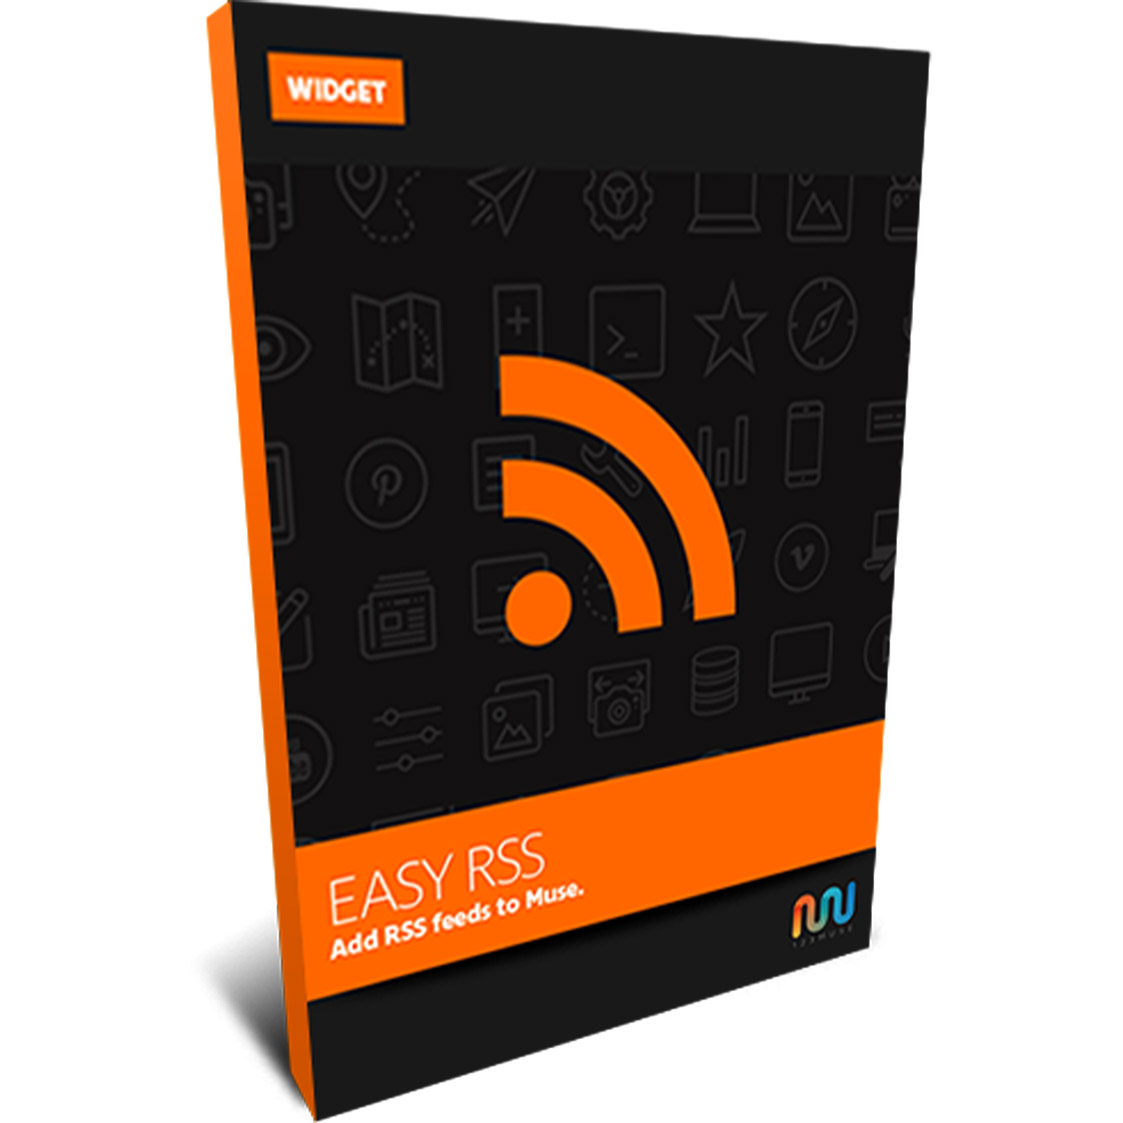 Easy RSS 2.4